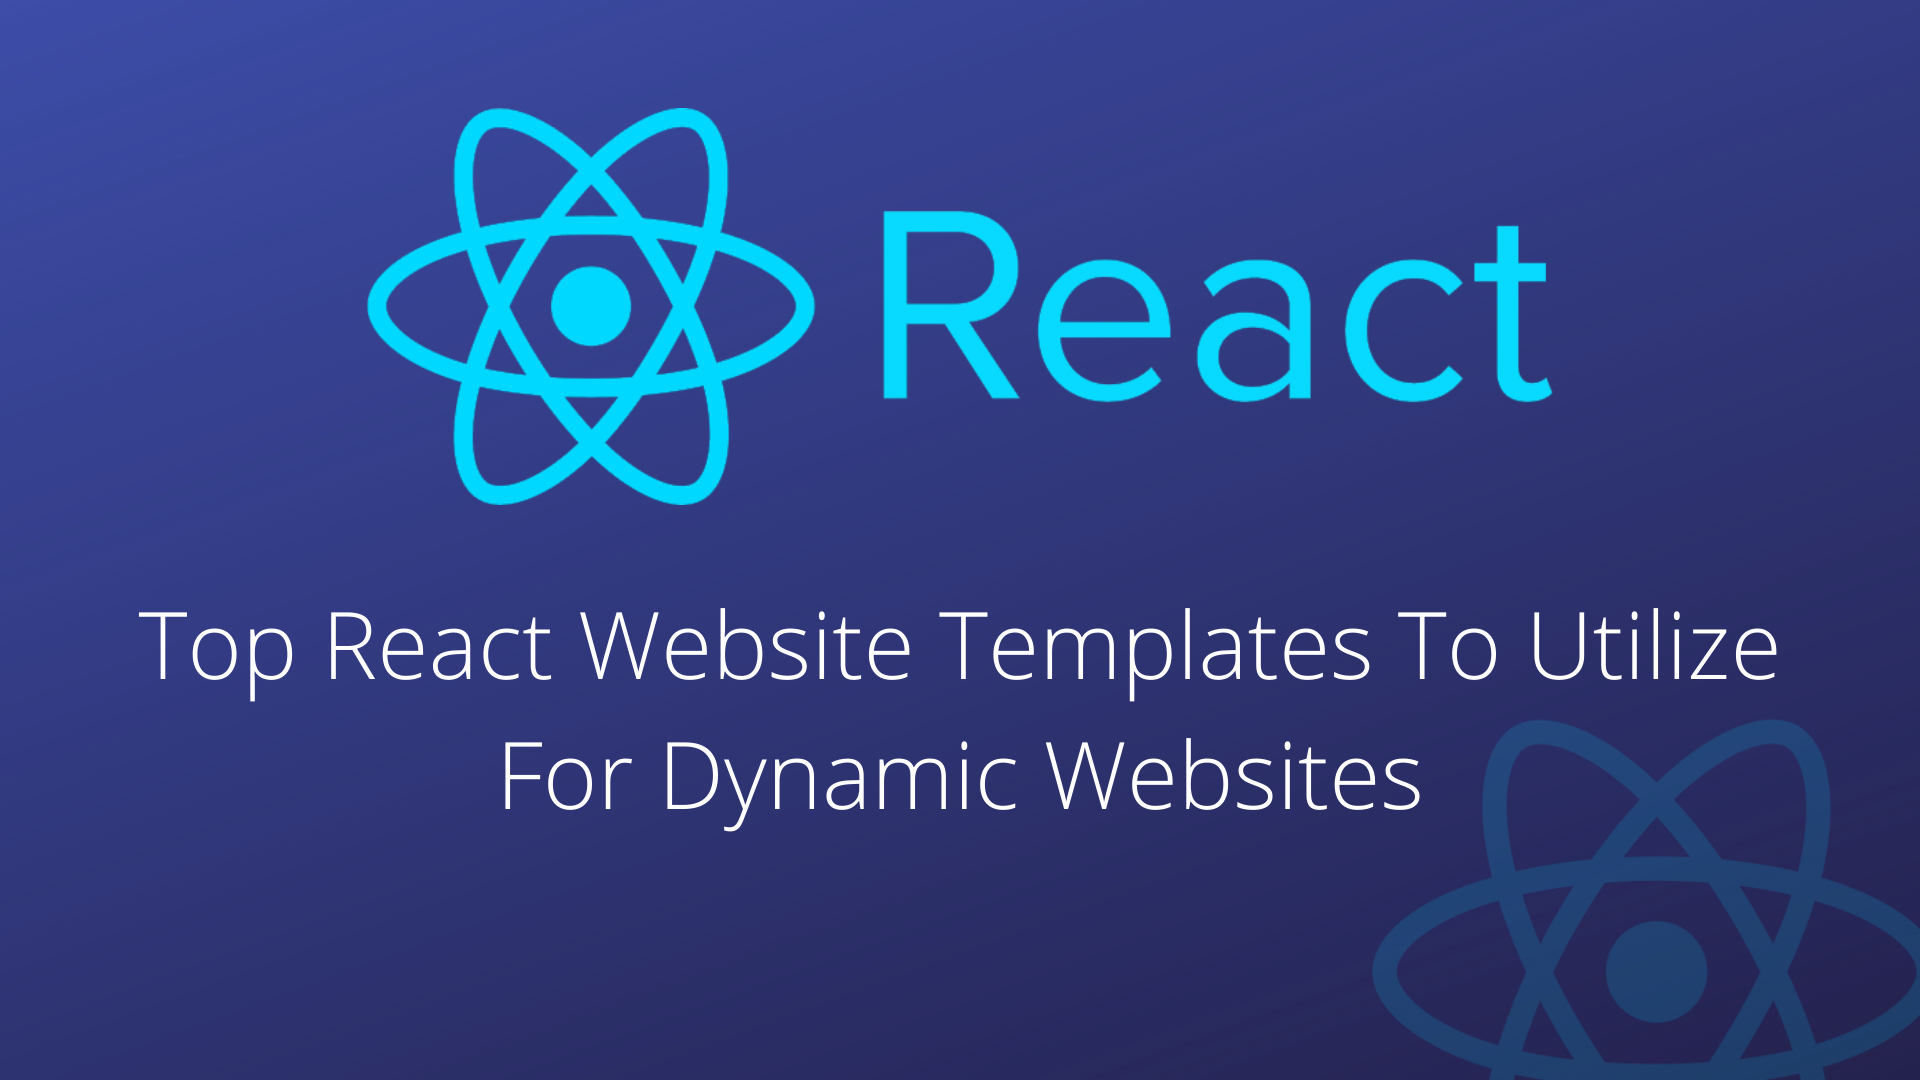 Top React Website Templates To Utilize For Dynamic Websites